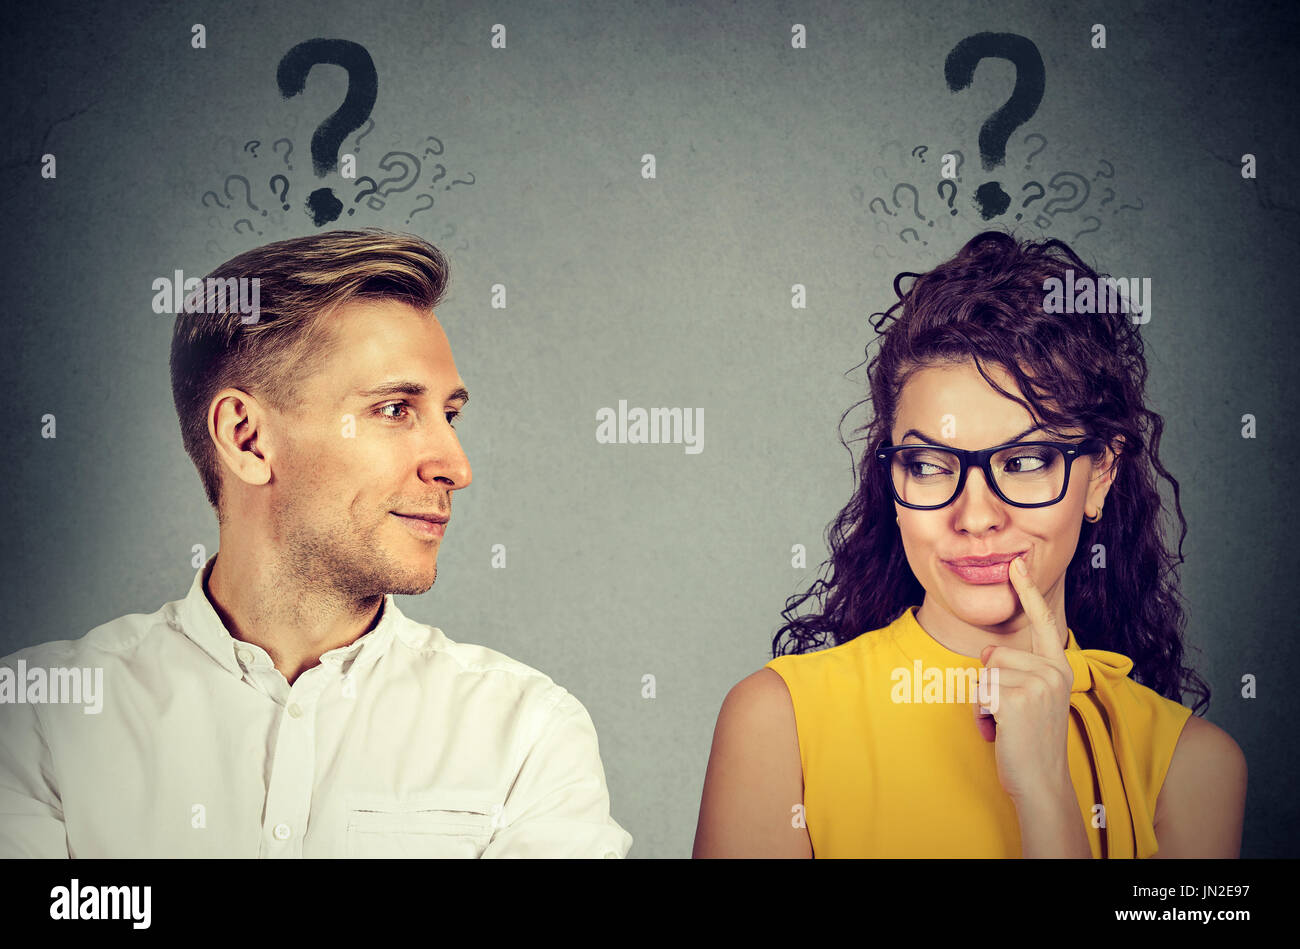 Man and woman with question mark looking at each other with interest - Stock Image